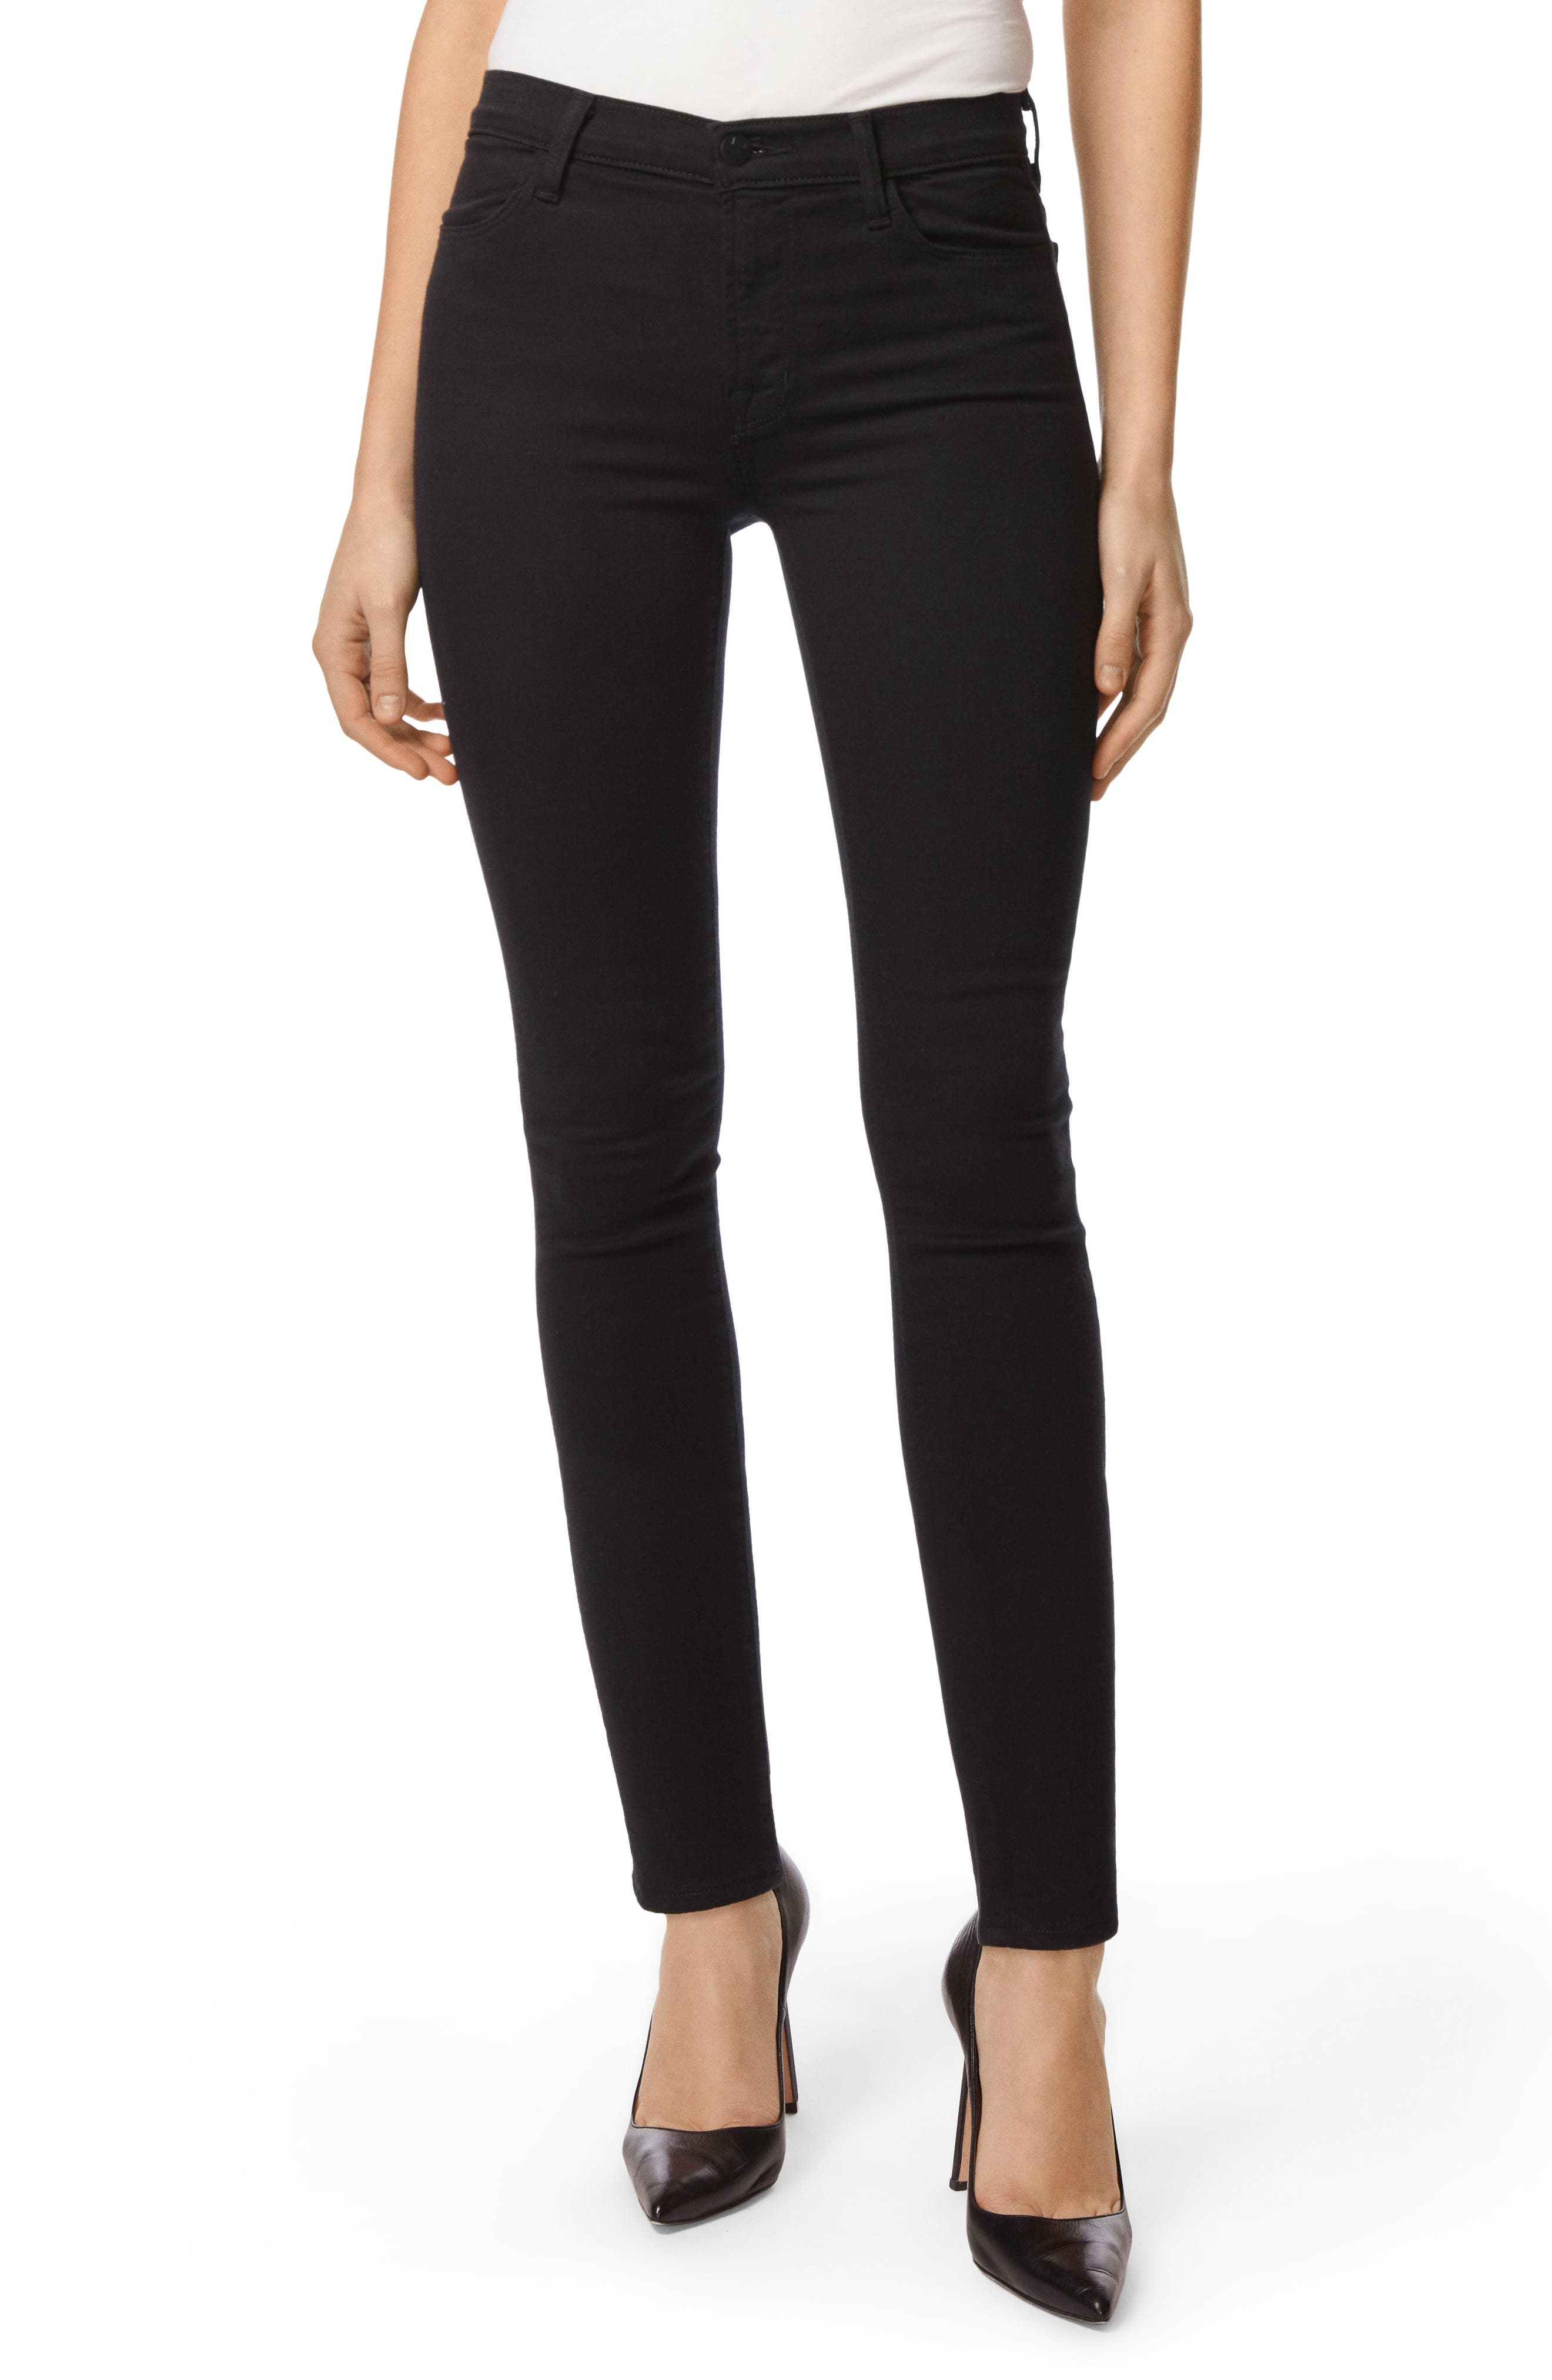 Main Image - J Brand Maria High Waist Super Skinny Jeans (Seriously Black)